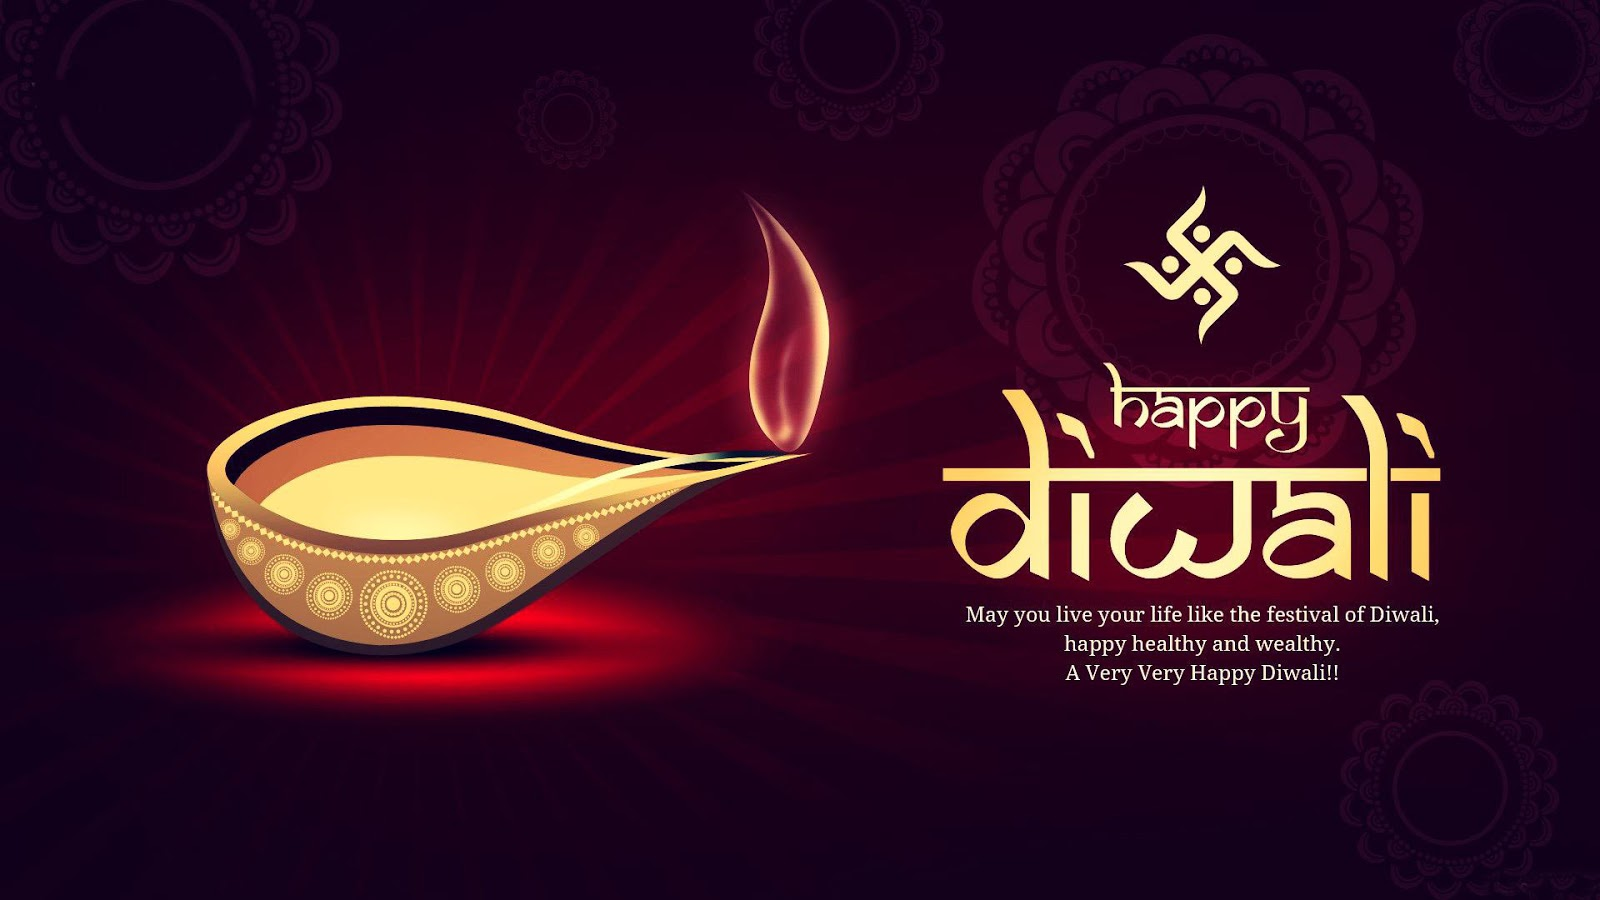 Happy diwali message 2016 top best and unique message wishes sms happy diwali message 2016 top best and unique message wishes sms collections of diwali m4hsunfo